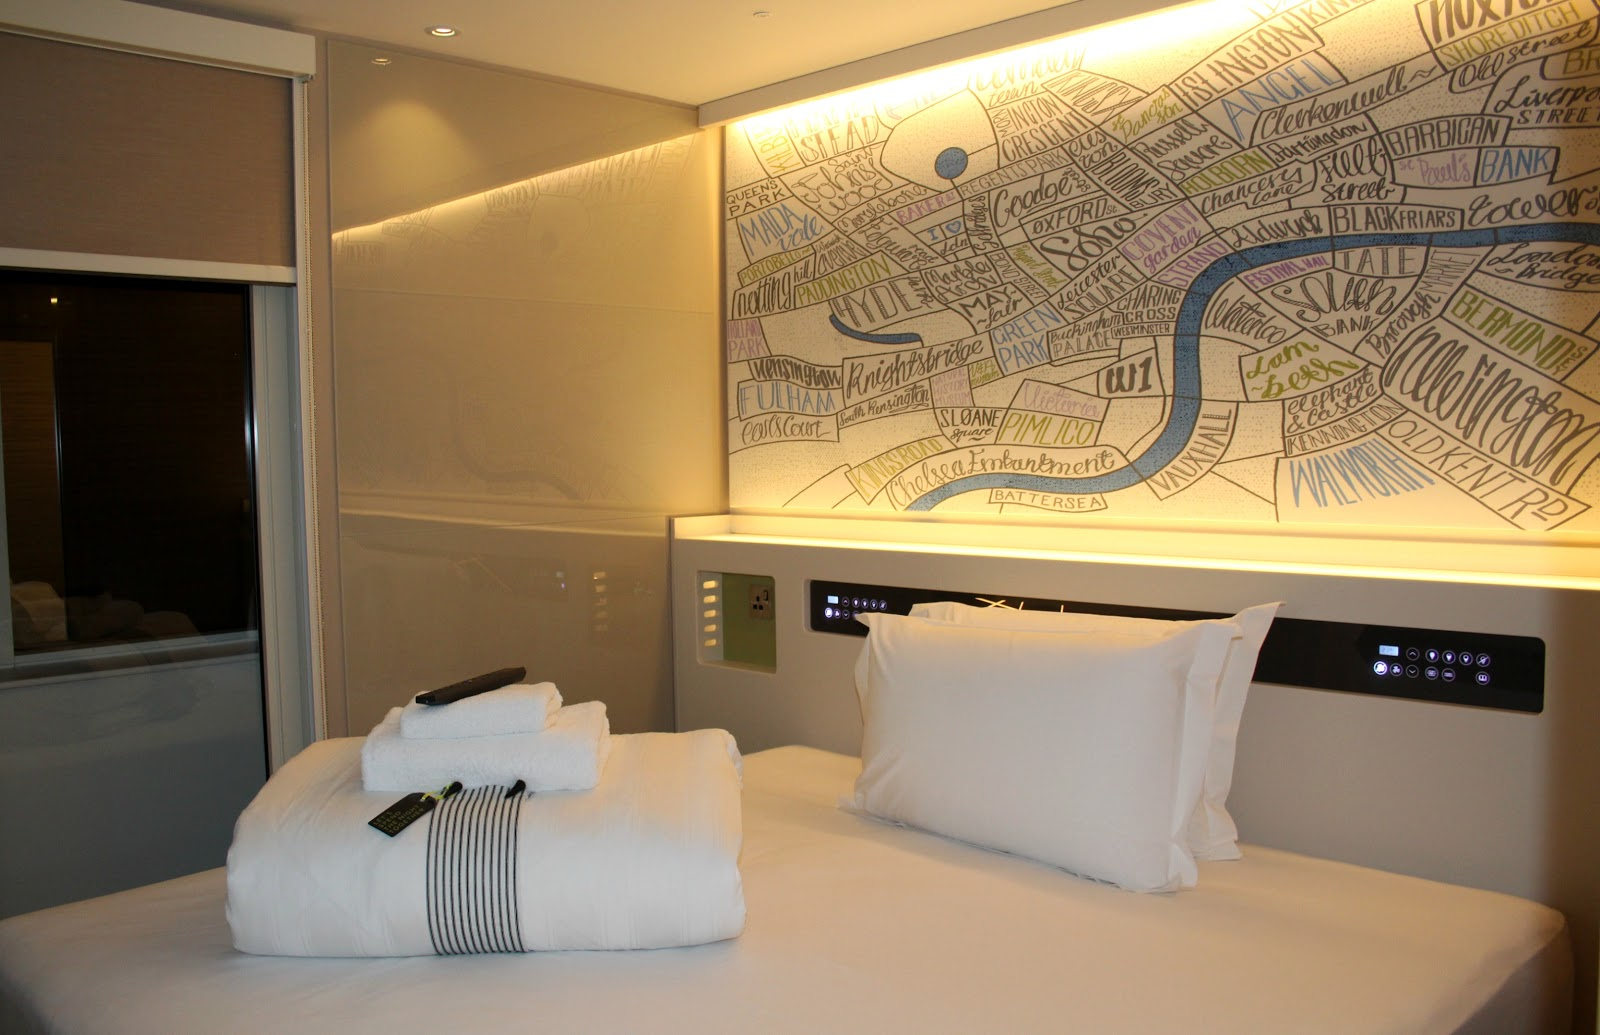 I M Not Going To Lie The Tech Controls In Rooms Sold It Me But Quickly Discovered There Is Much More A Hub Hotel Than Just Technology